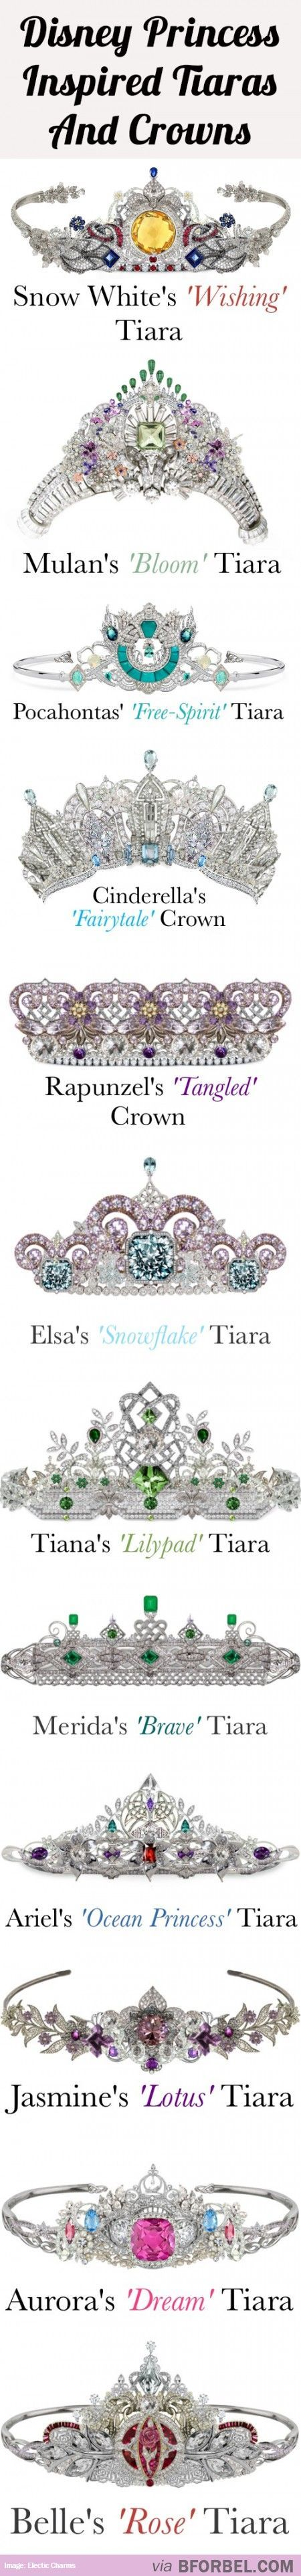 12 Disney Princess Tiaras And Crowns…: